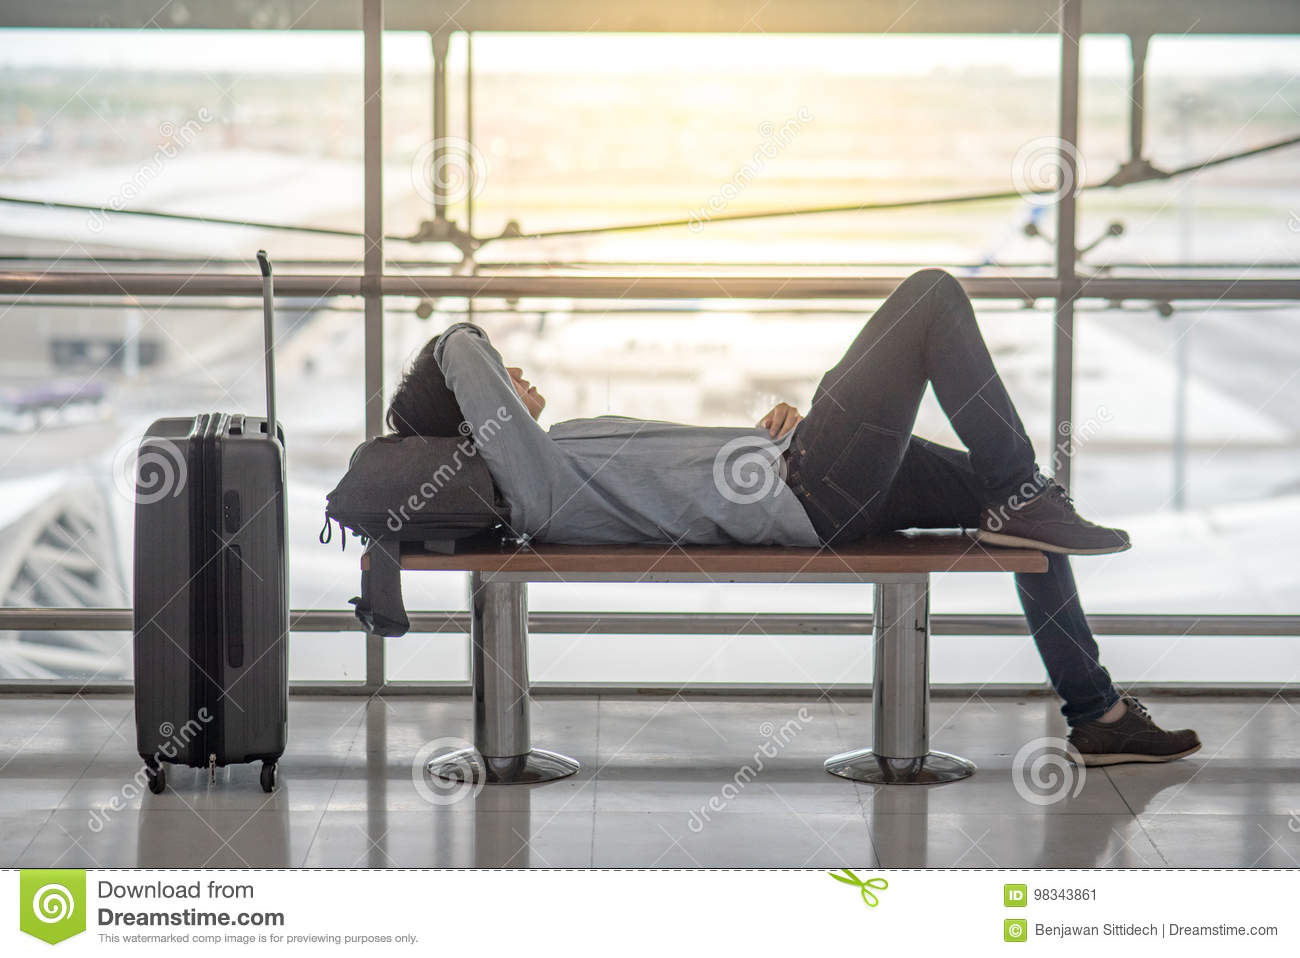 Young Asian man lying on bench in airport terminal